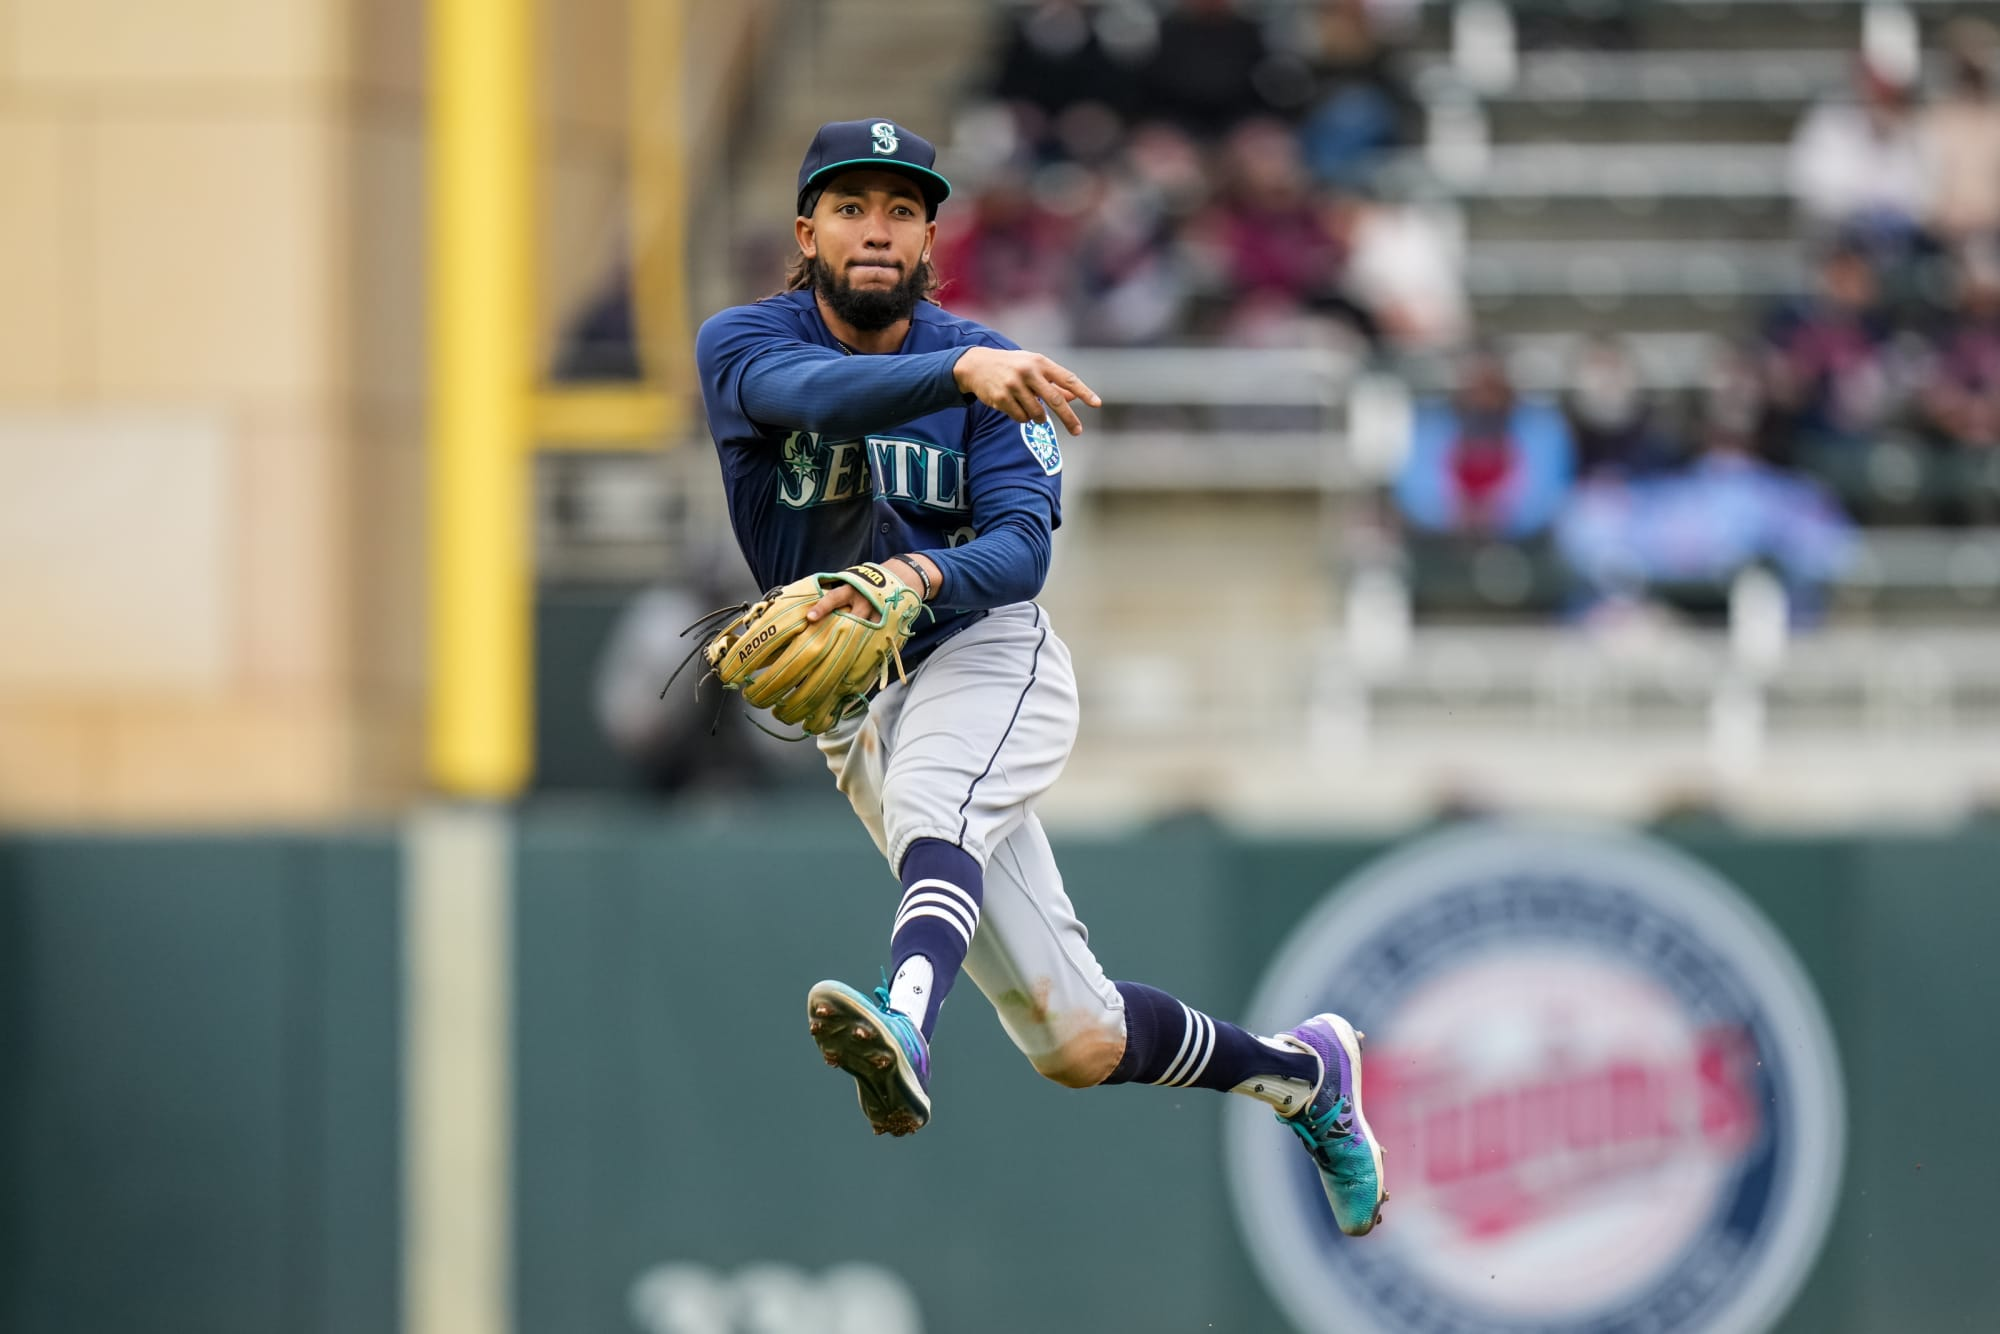 Can Seattle Mariners SS J.P. Crawford win another Gold Glove?